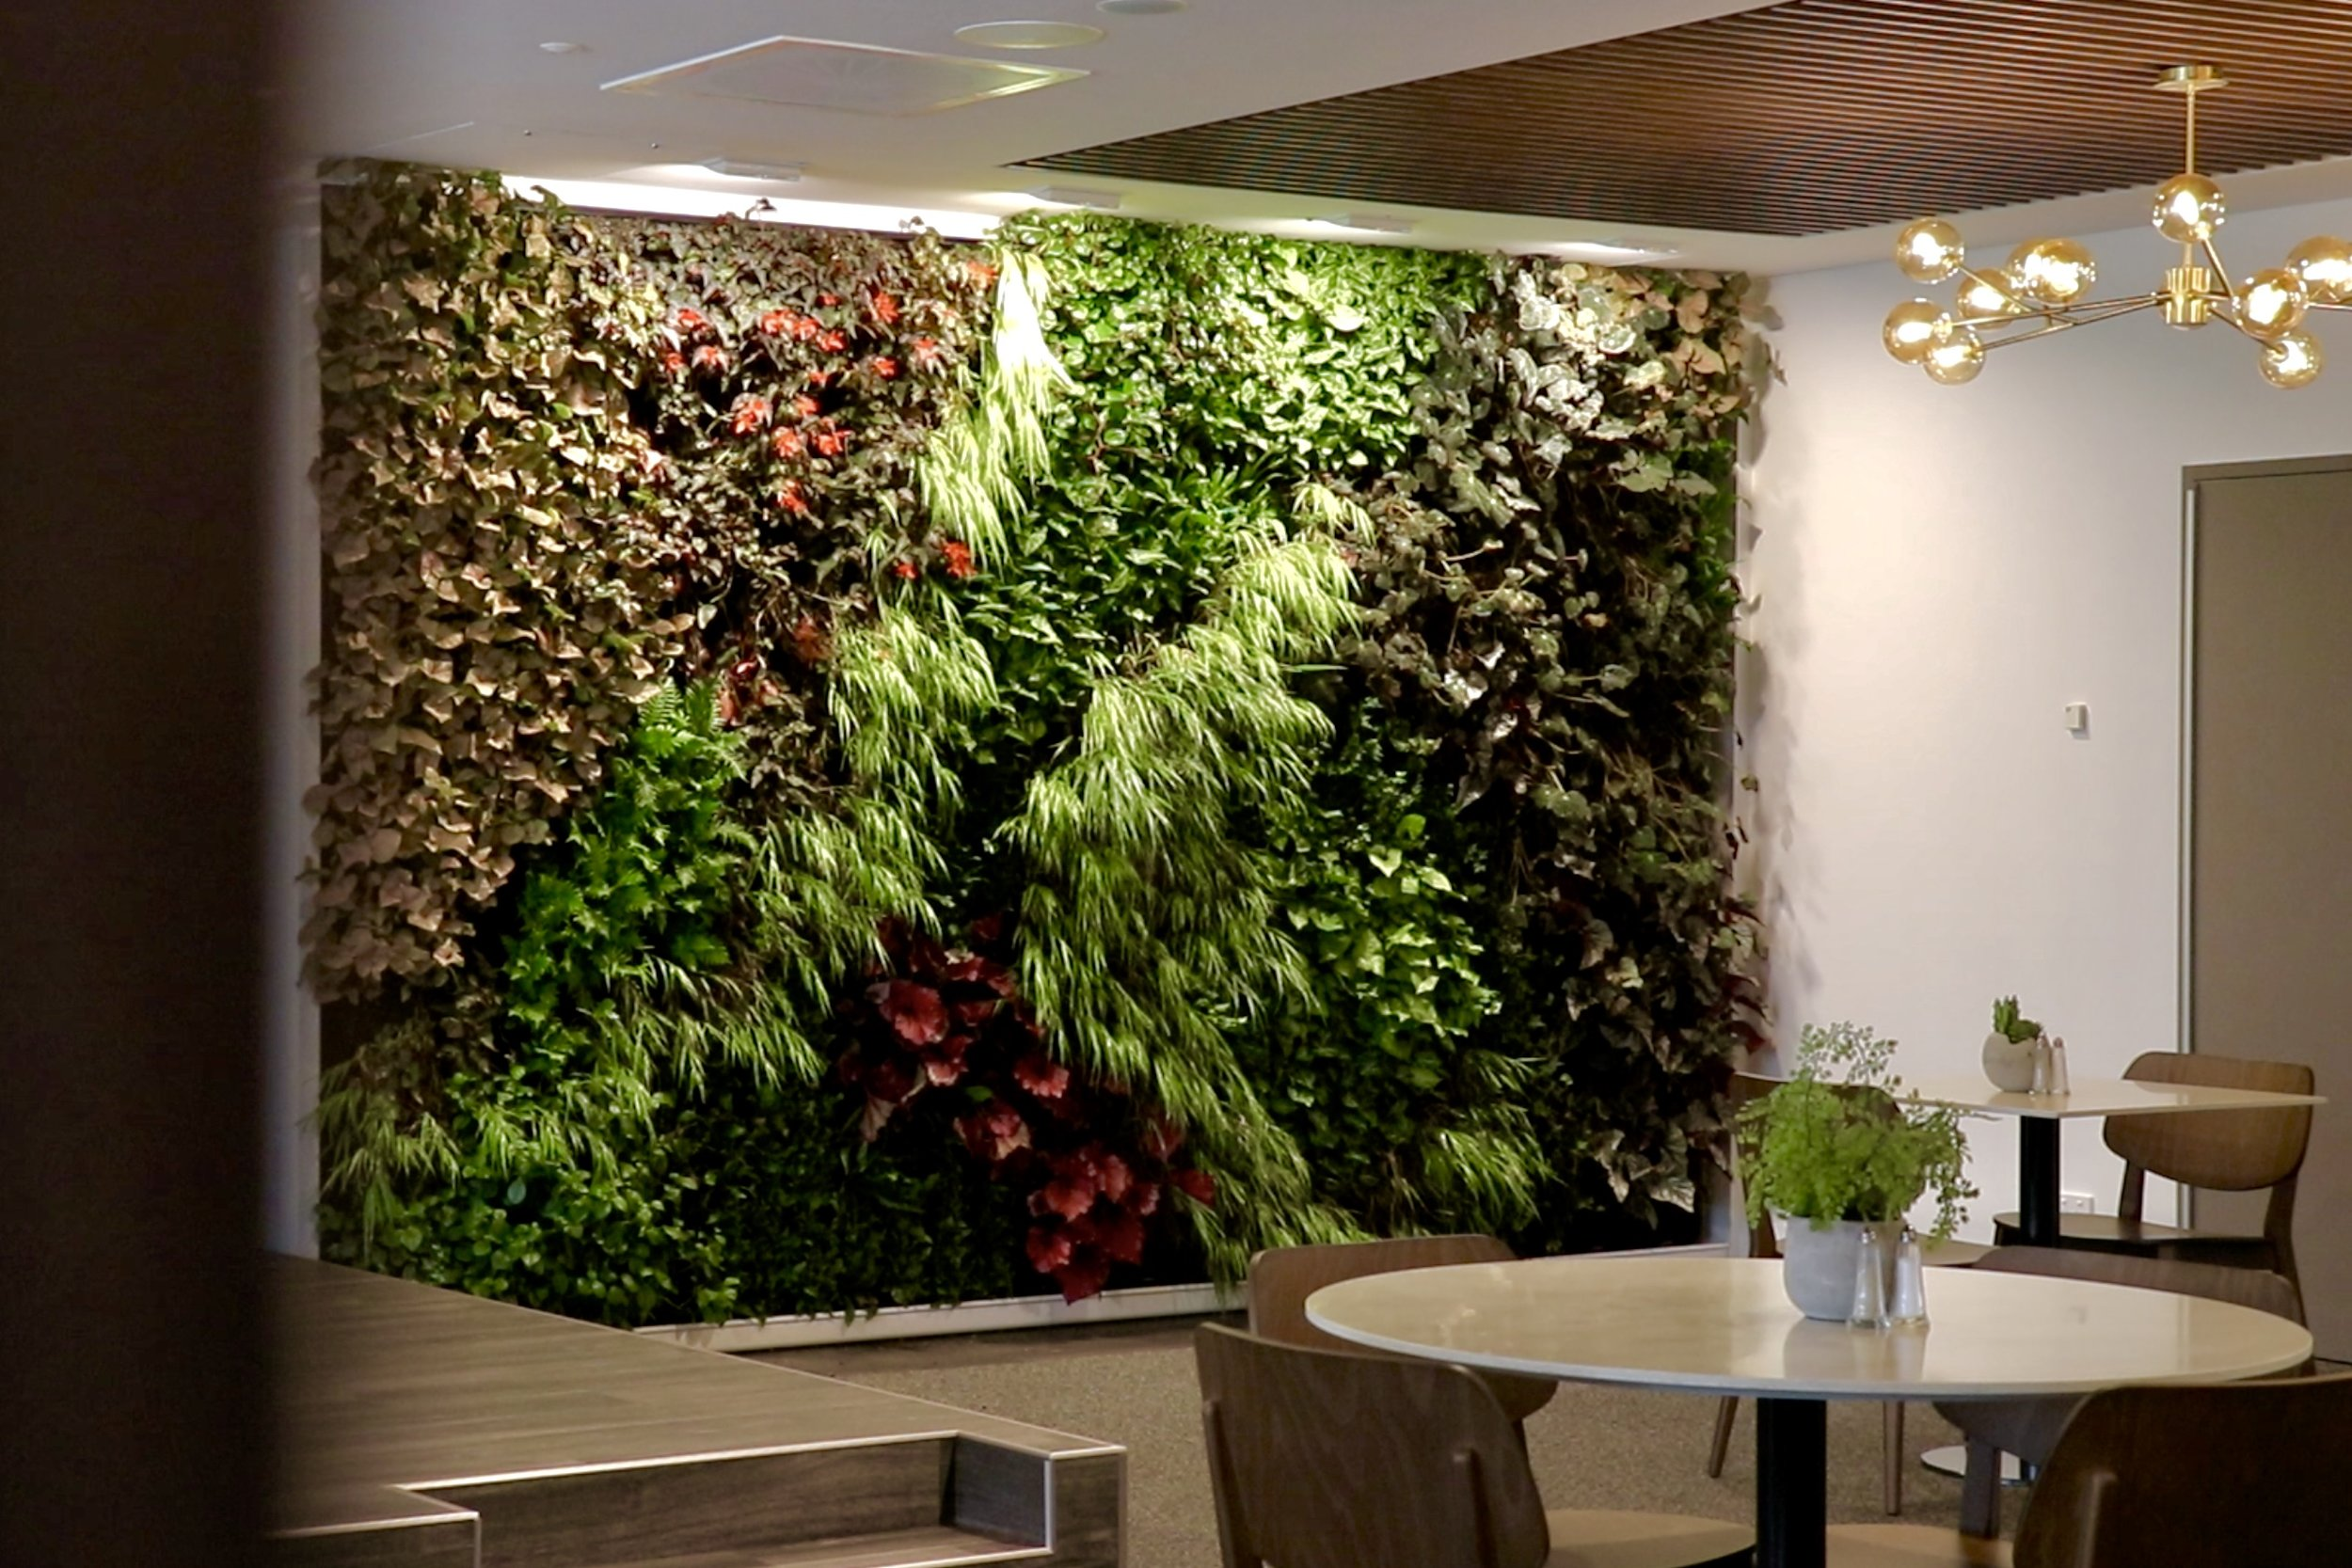 SMINational_LivingWall_Ramsay HealthCare_St Leonards.png